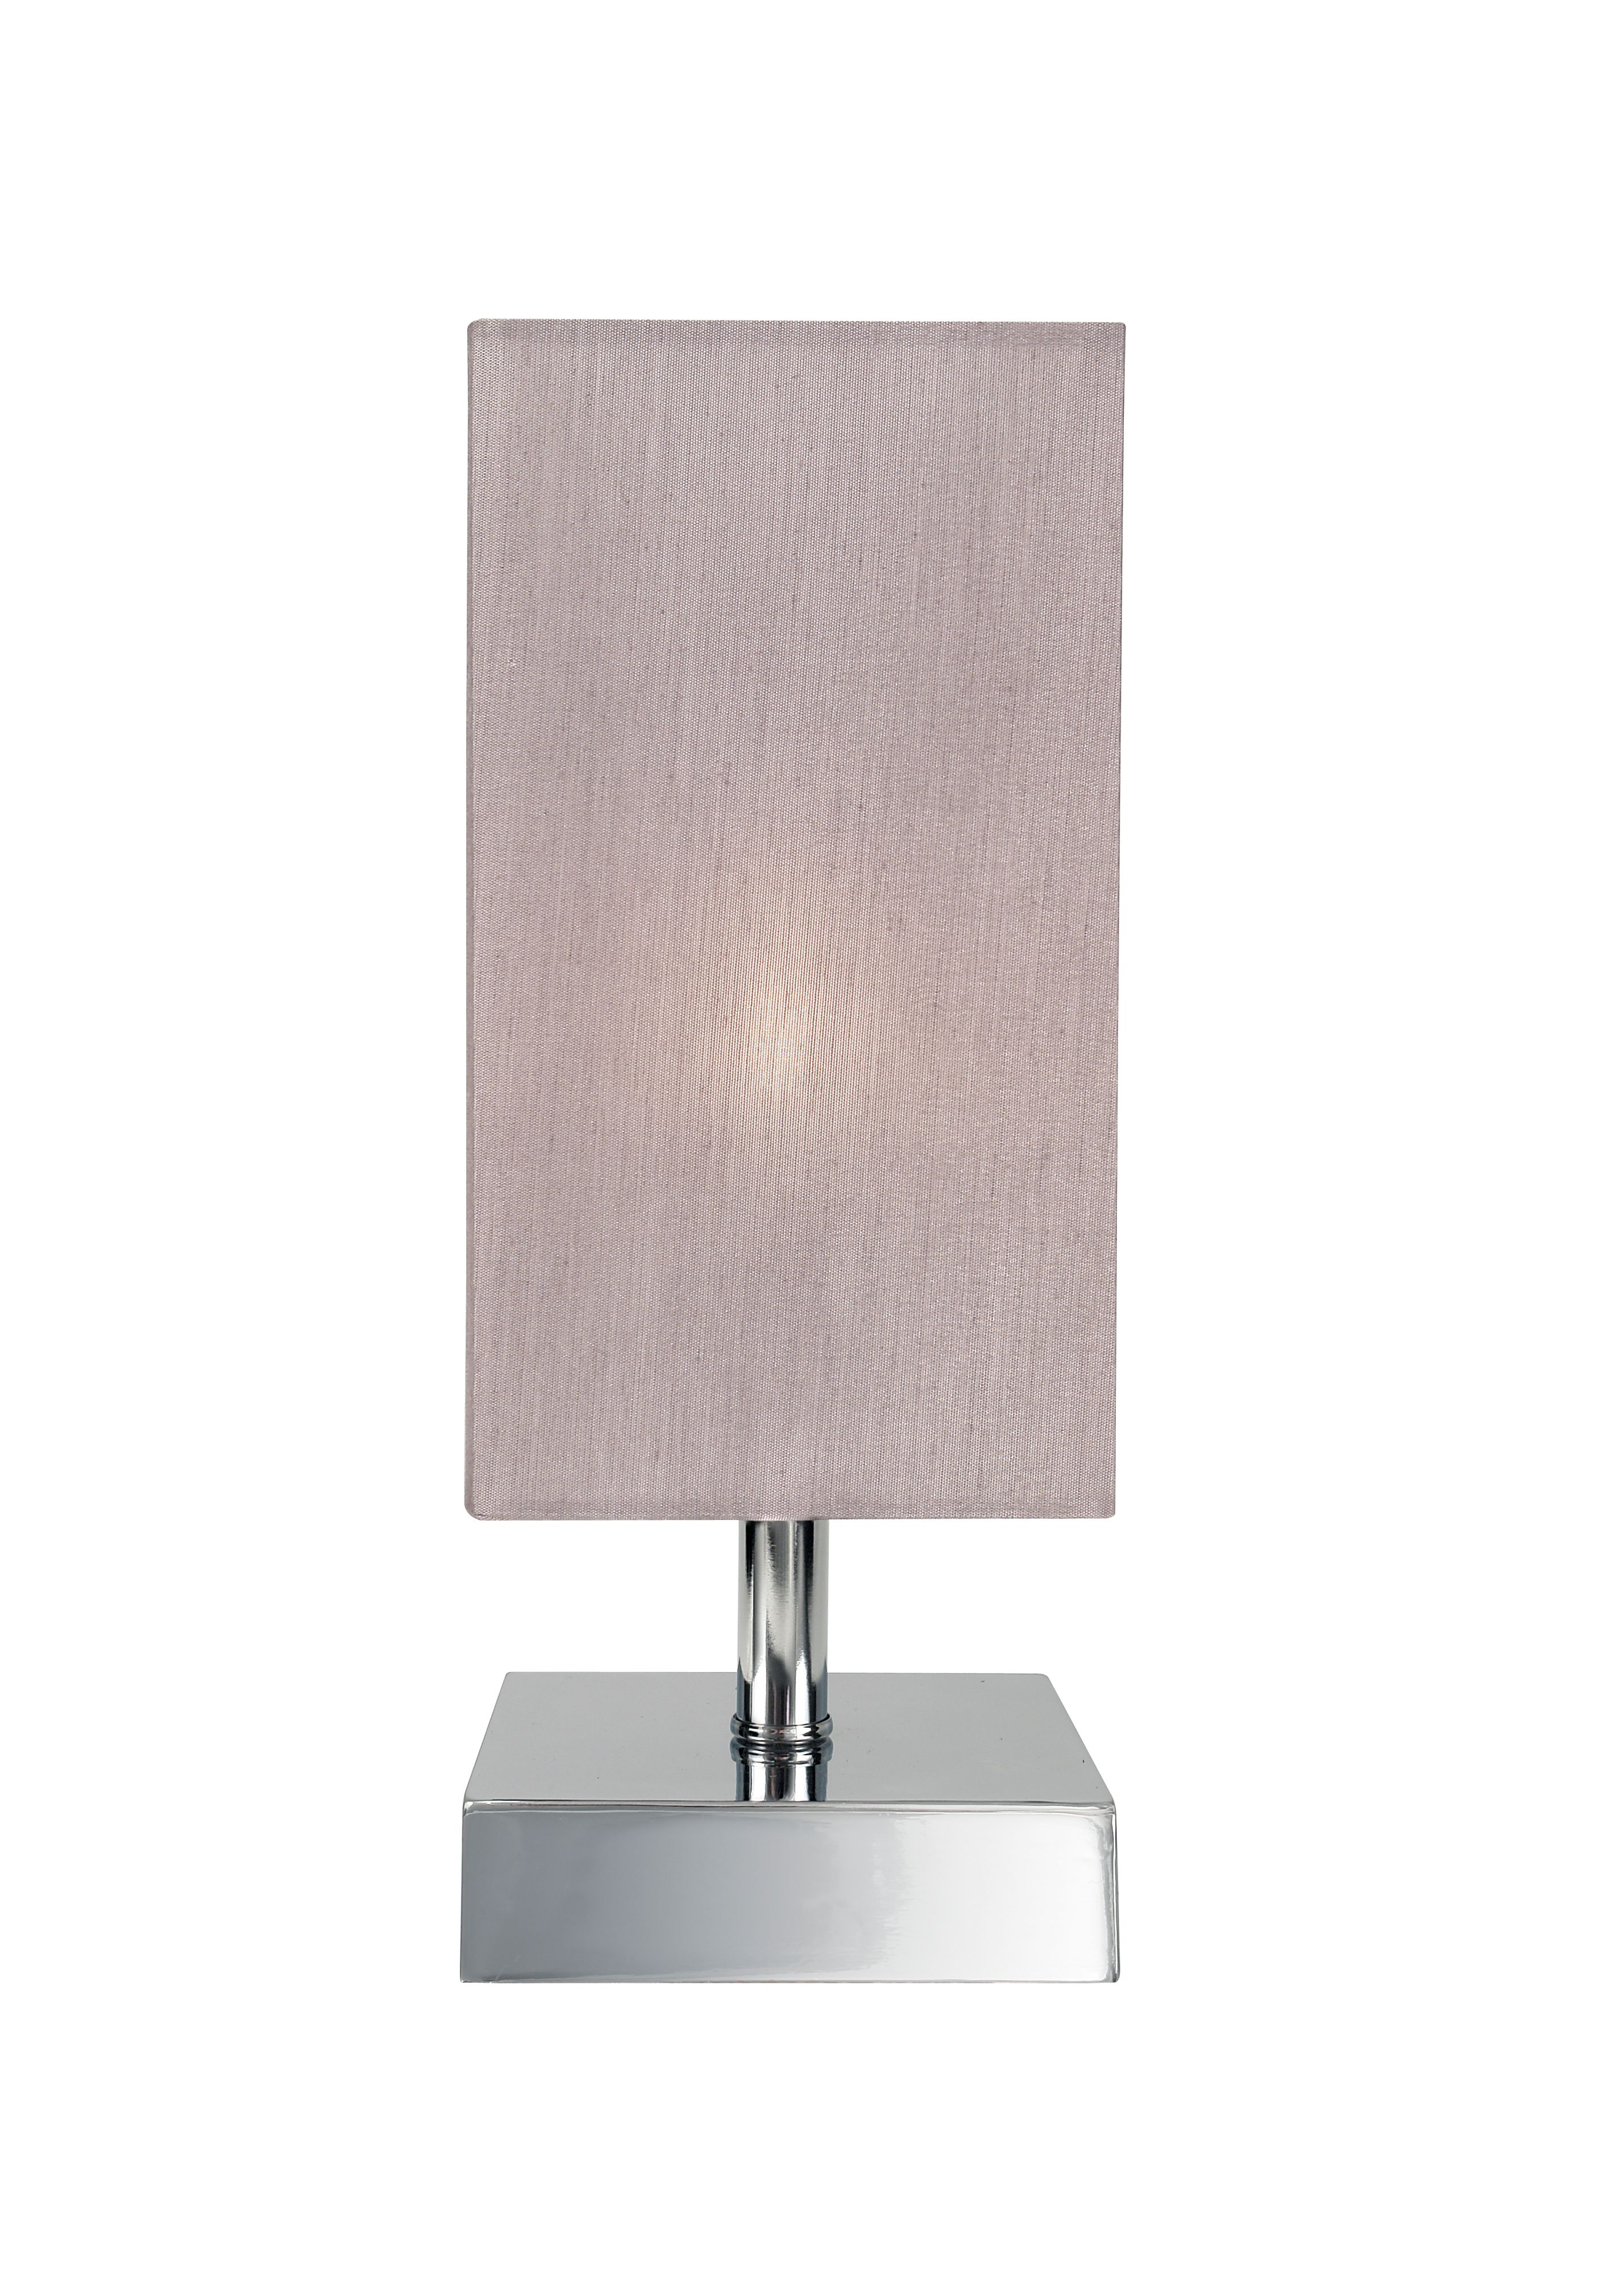 Image Result For Modern Bedside Table Lamps